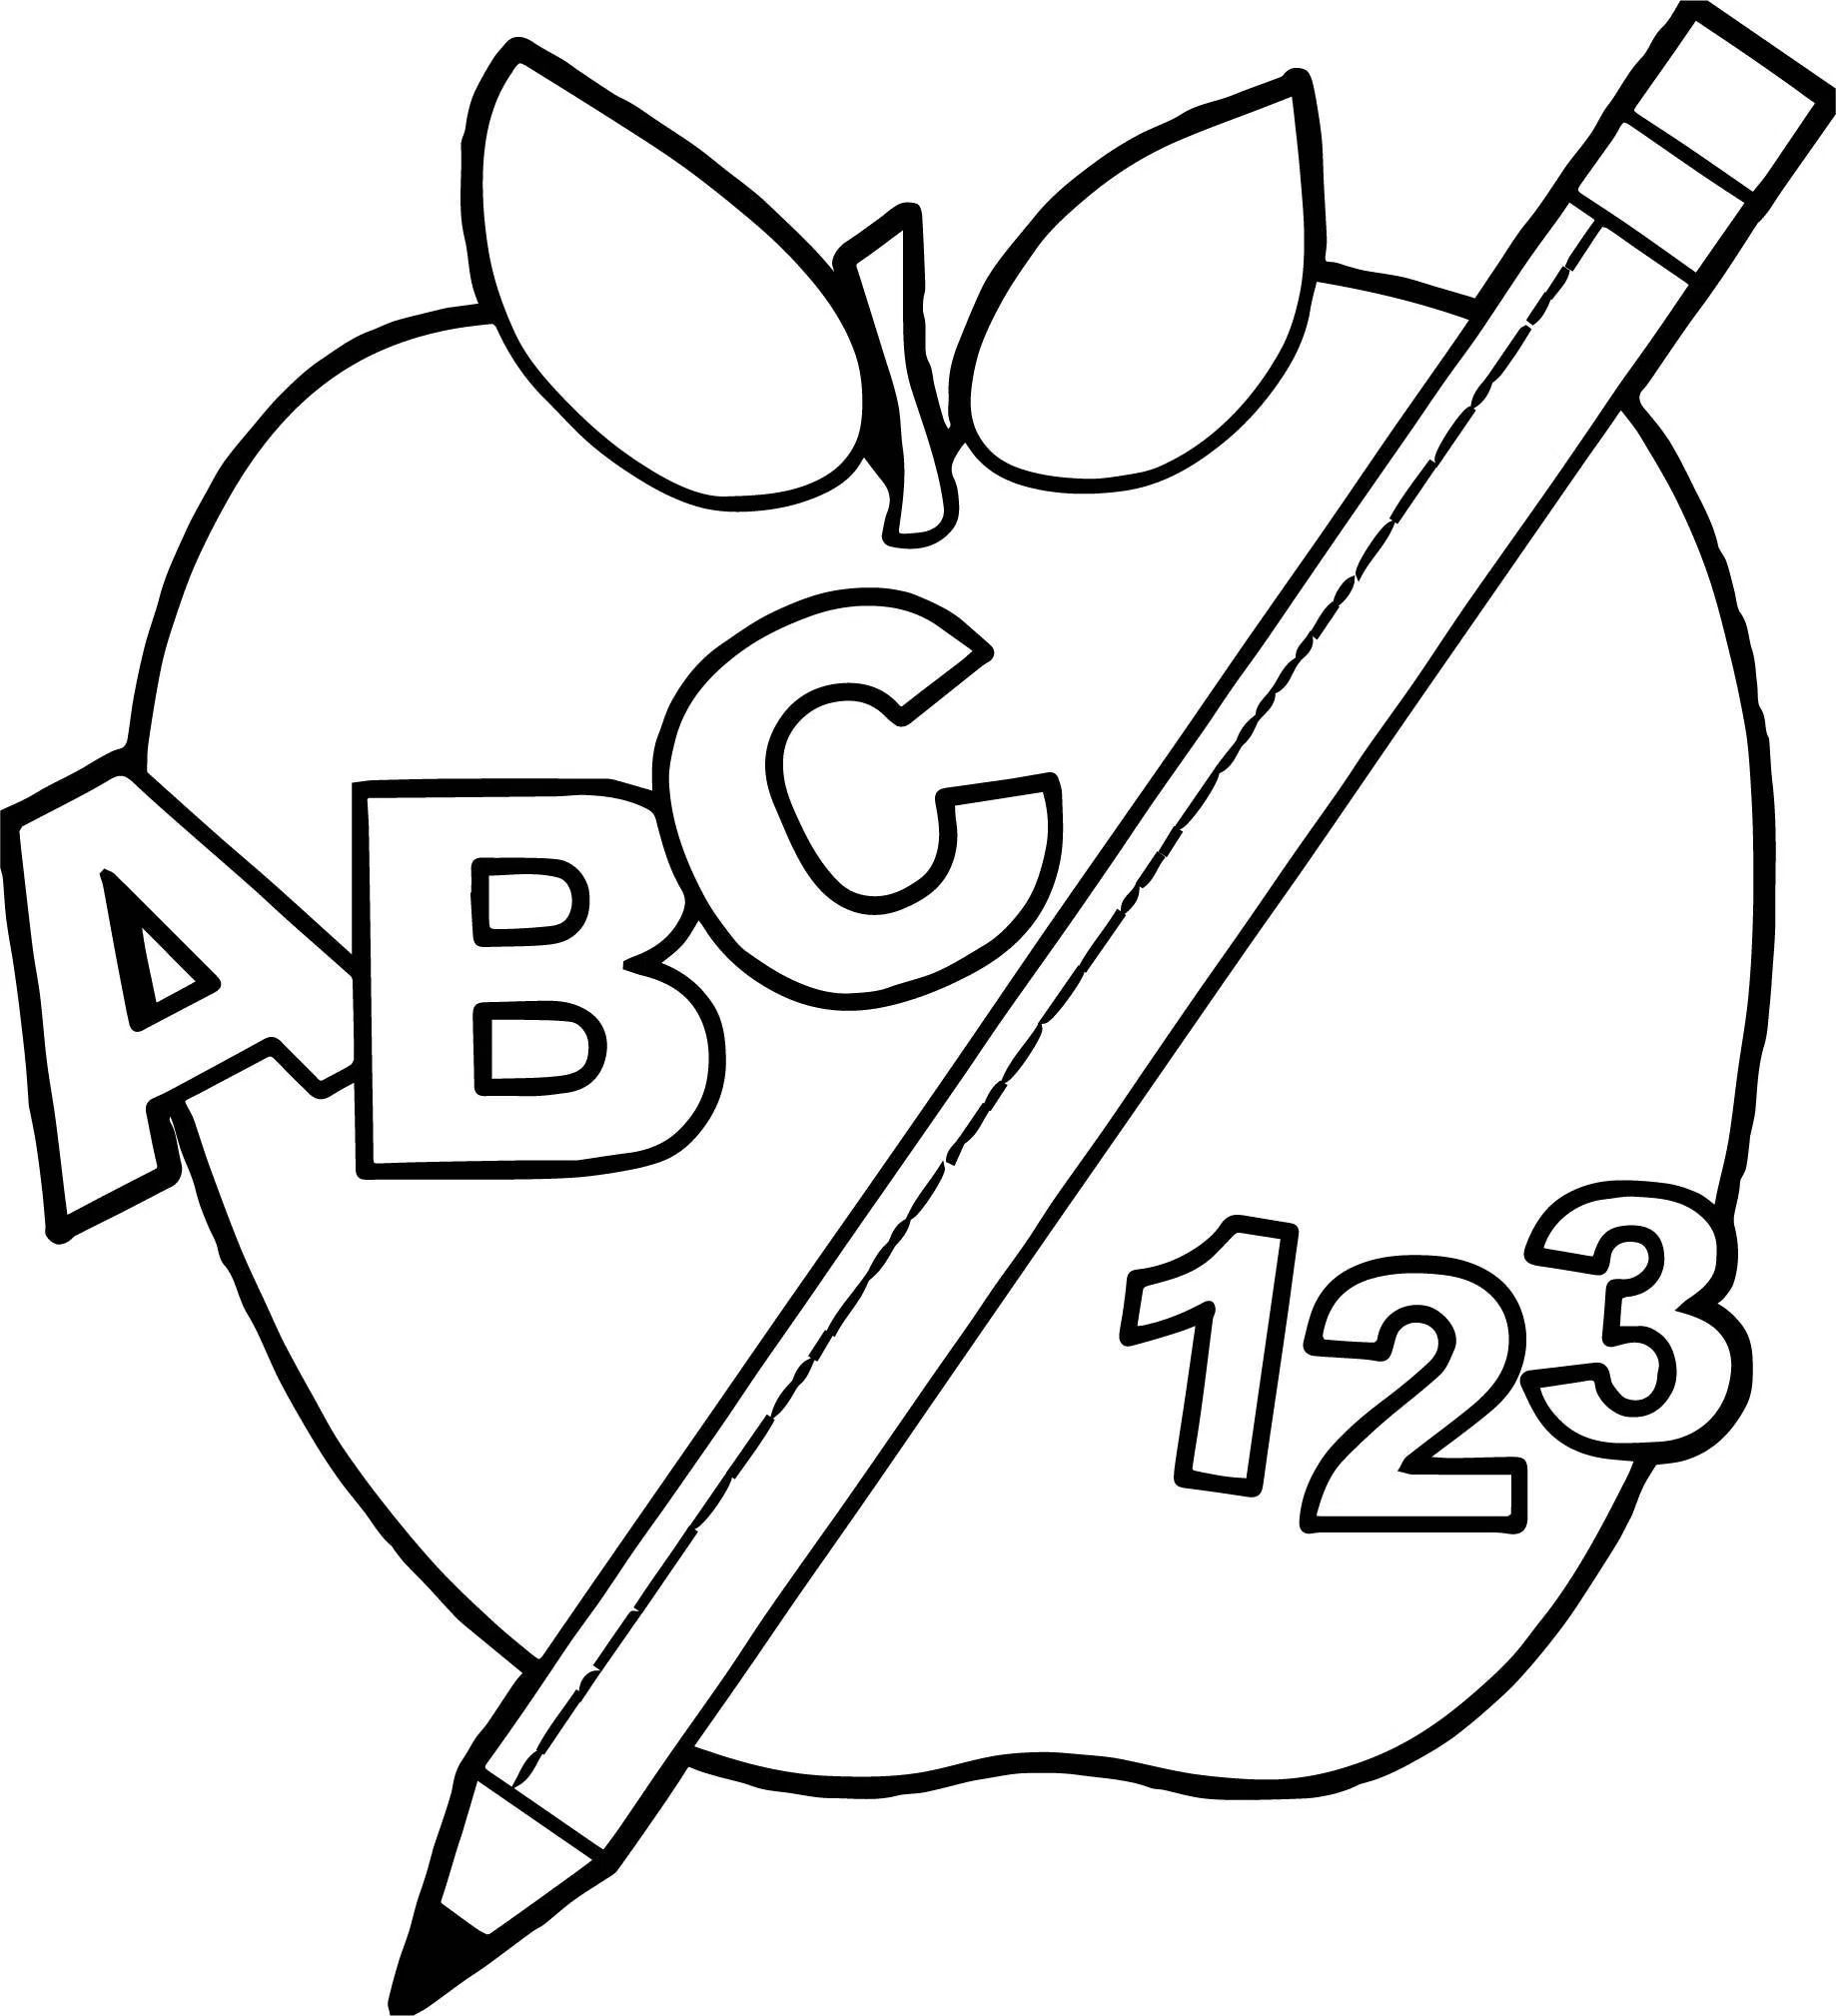 Abc Blocks Coloring Pages At Getcolorings